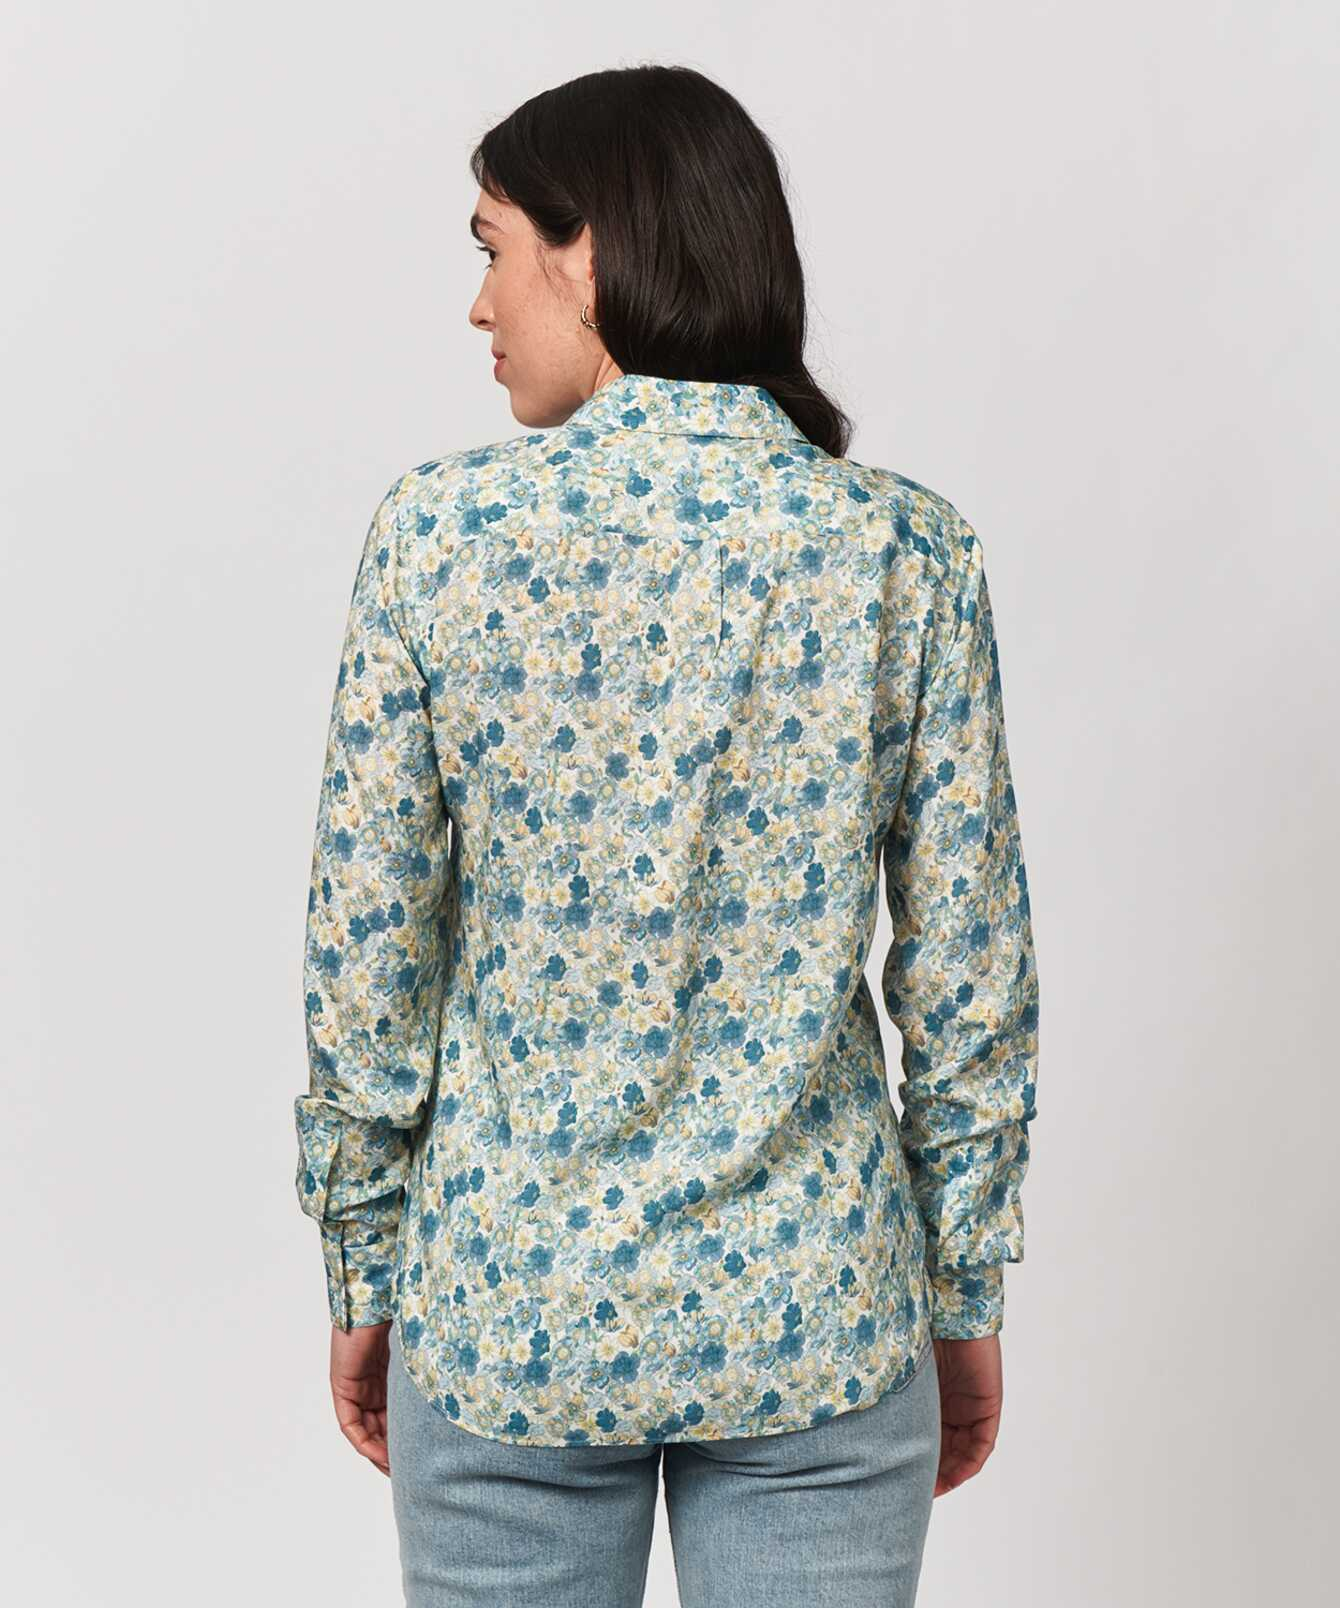 Shirt Tilde Floret Print   The Shirt Factory